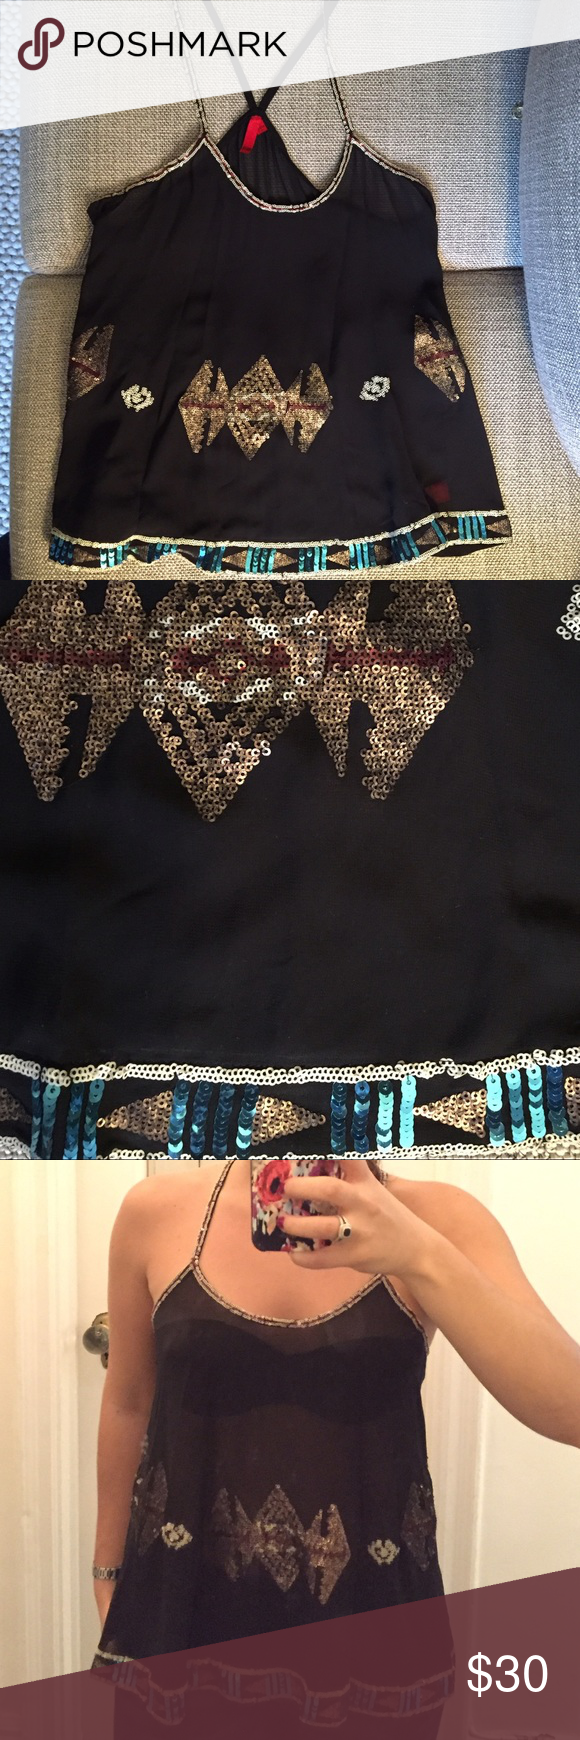 5|48 Saks Fifth Ave sheer sequin black top Beautiful sheer sequin tribal top with cross cross straps. Never worn- perfect condition! Saks Fifth Avenue Tops Tank Tops